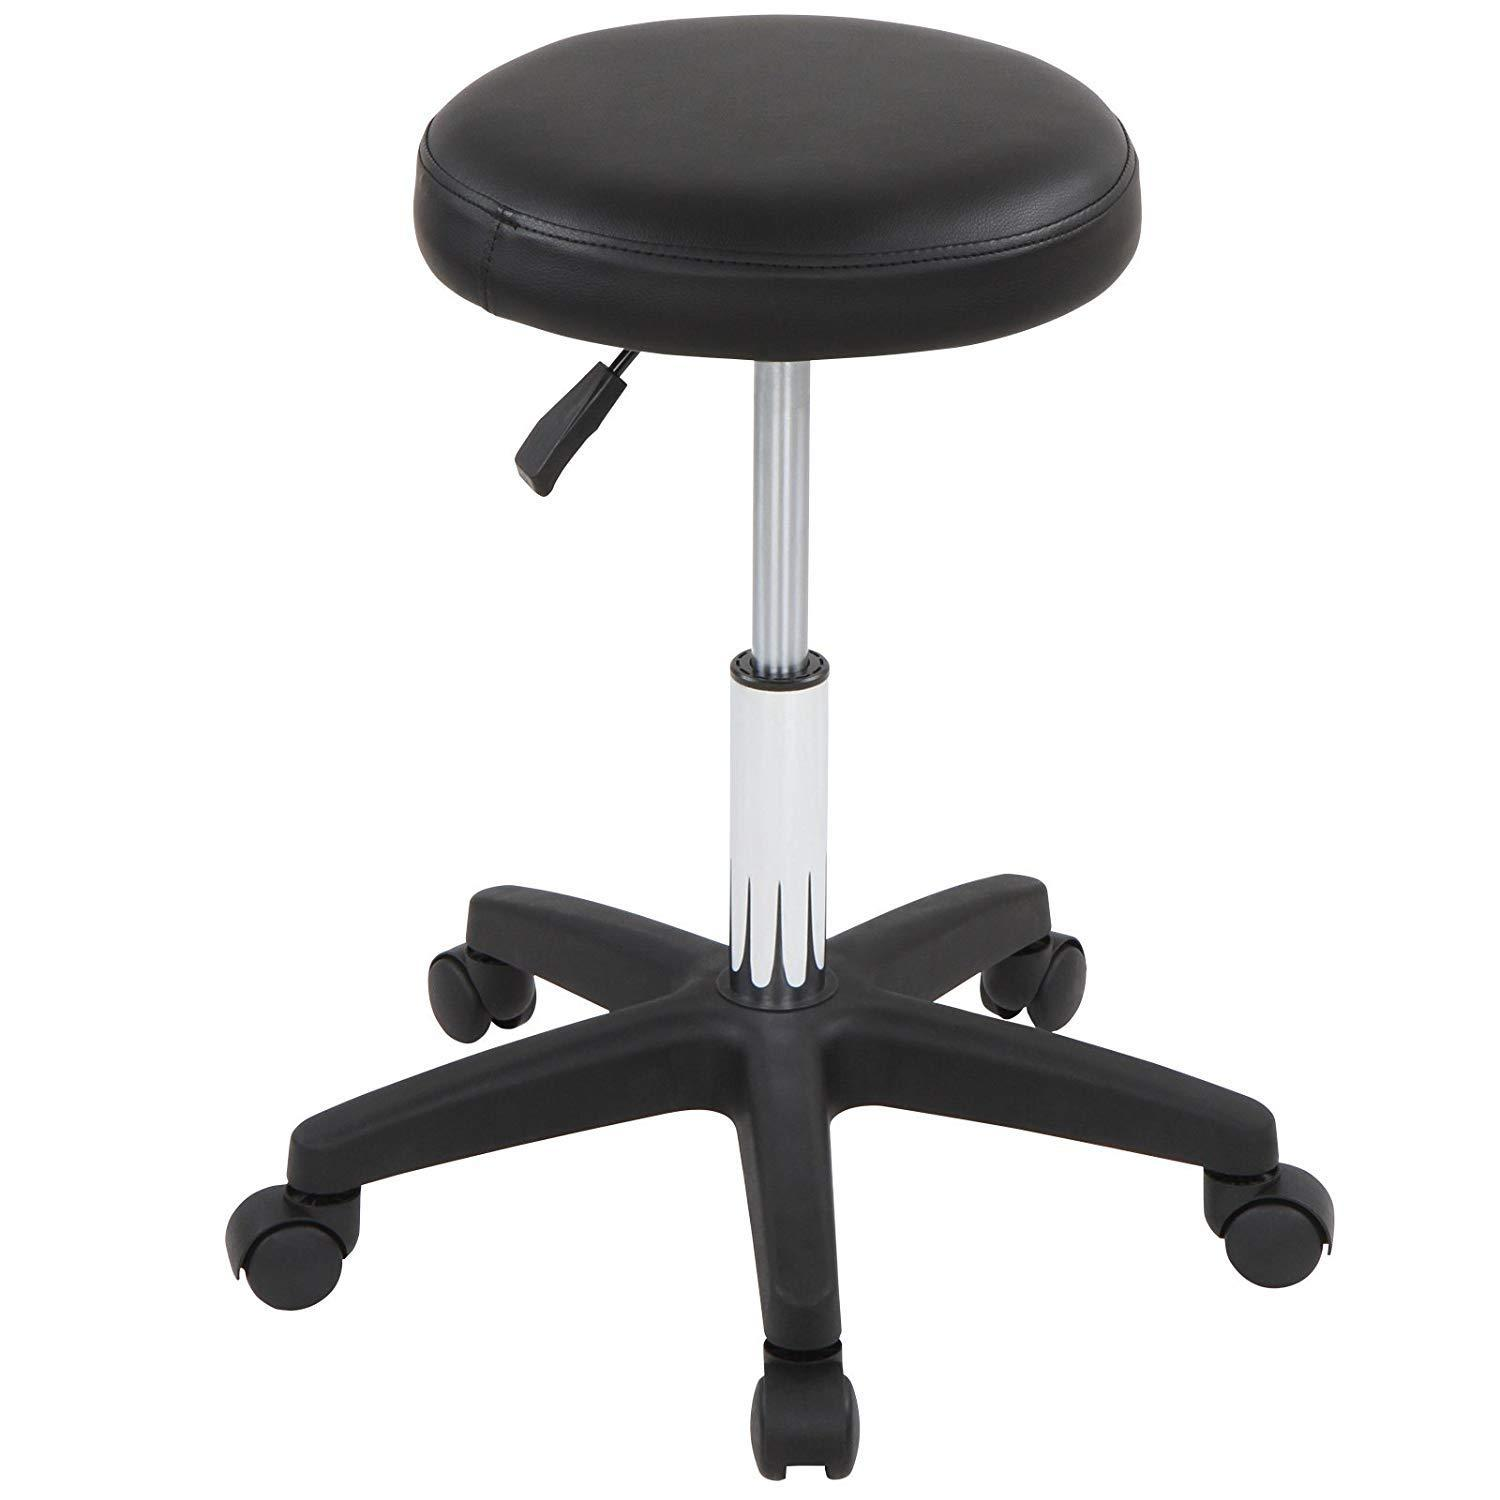 Set of 2 Elegant Height Adjustable Cosmetic Stools (Black) Comfortable Soft Padded Chairs